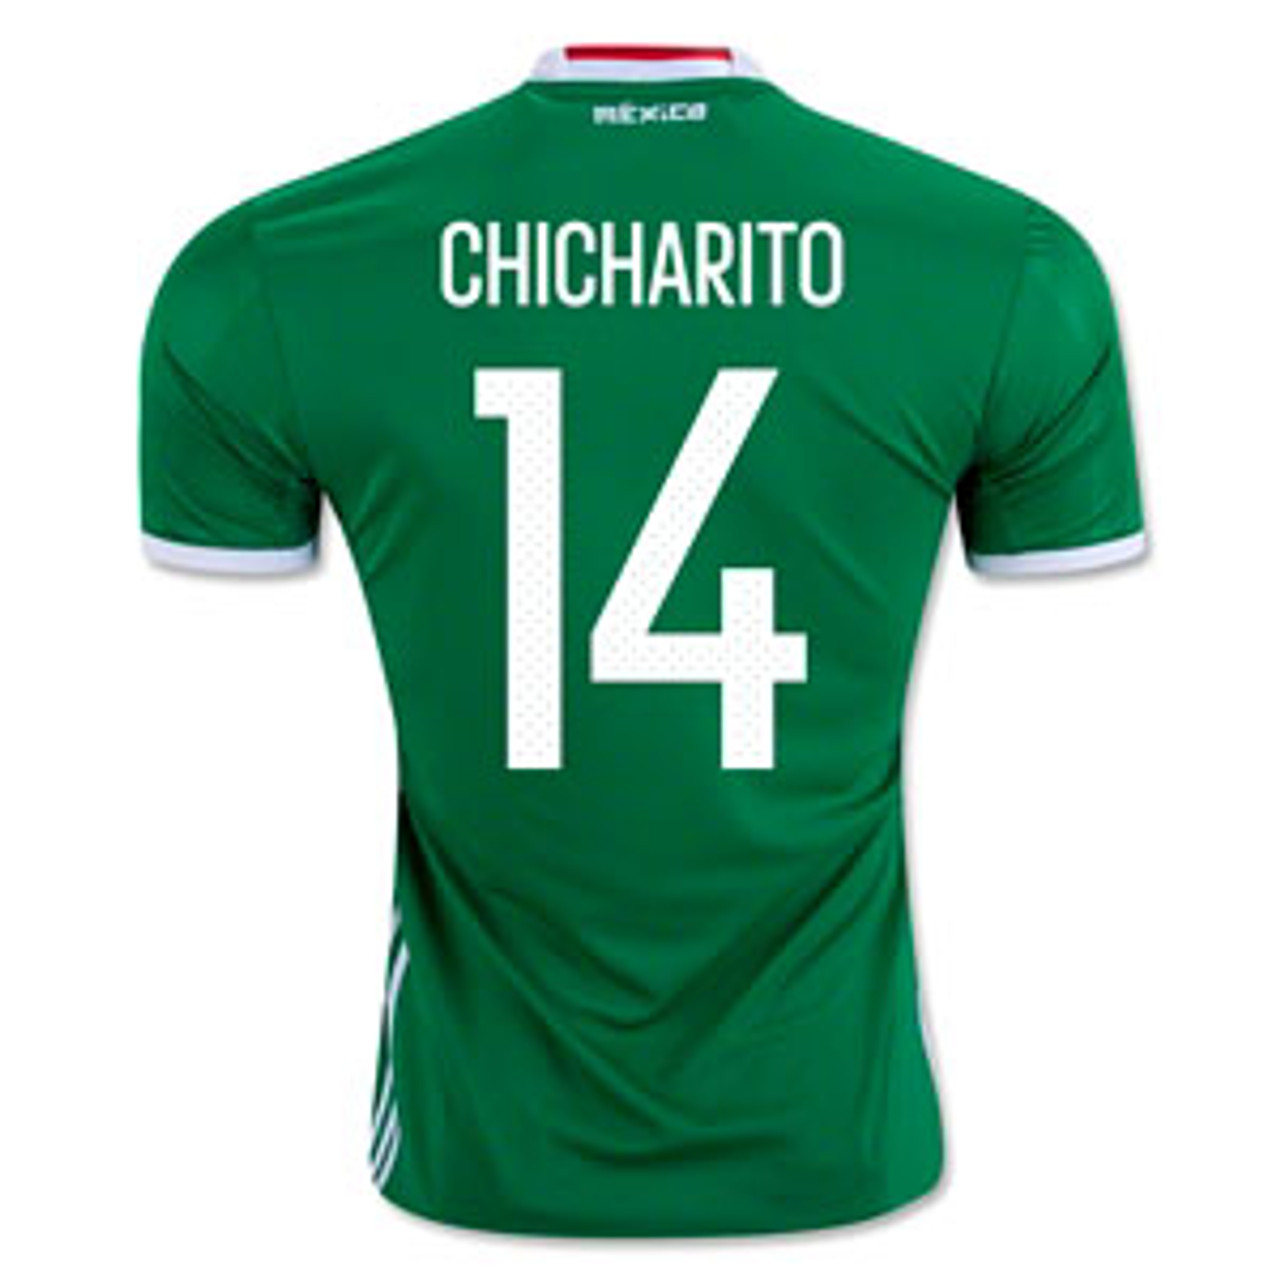 OFFICIAL MENS HOME CHICHARITO JERSEY